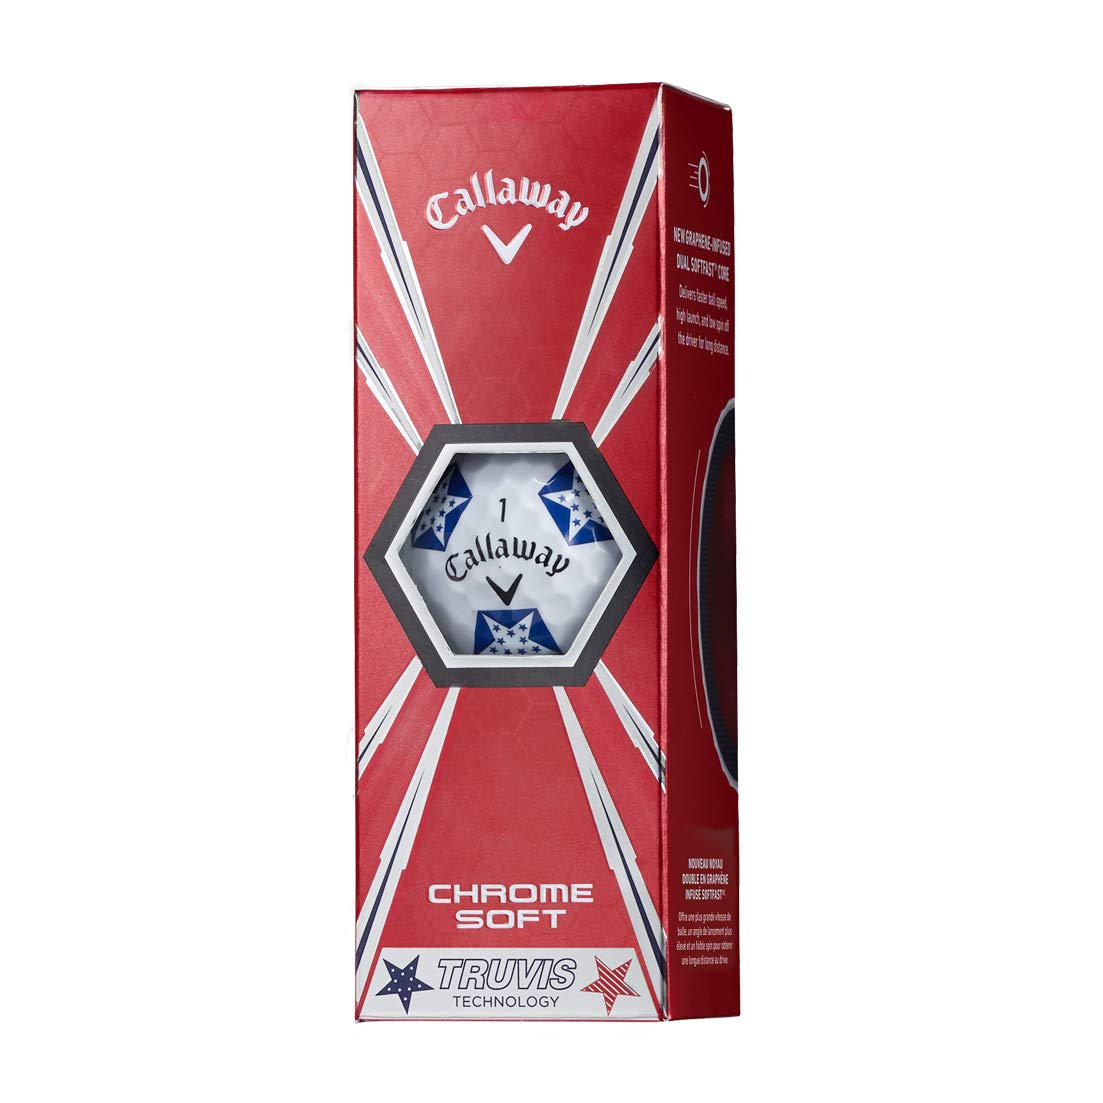 Callaway Golf Chrome Soft Truvis Golf Balls, (One Dozen), Stars and Stripes (Limited Edition) by Callaway (Image #4)